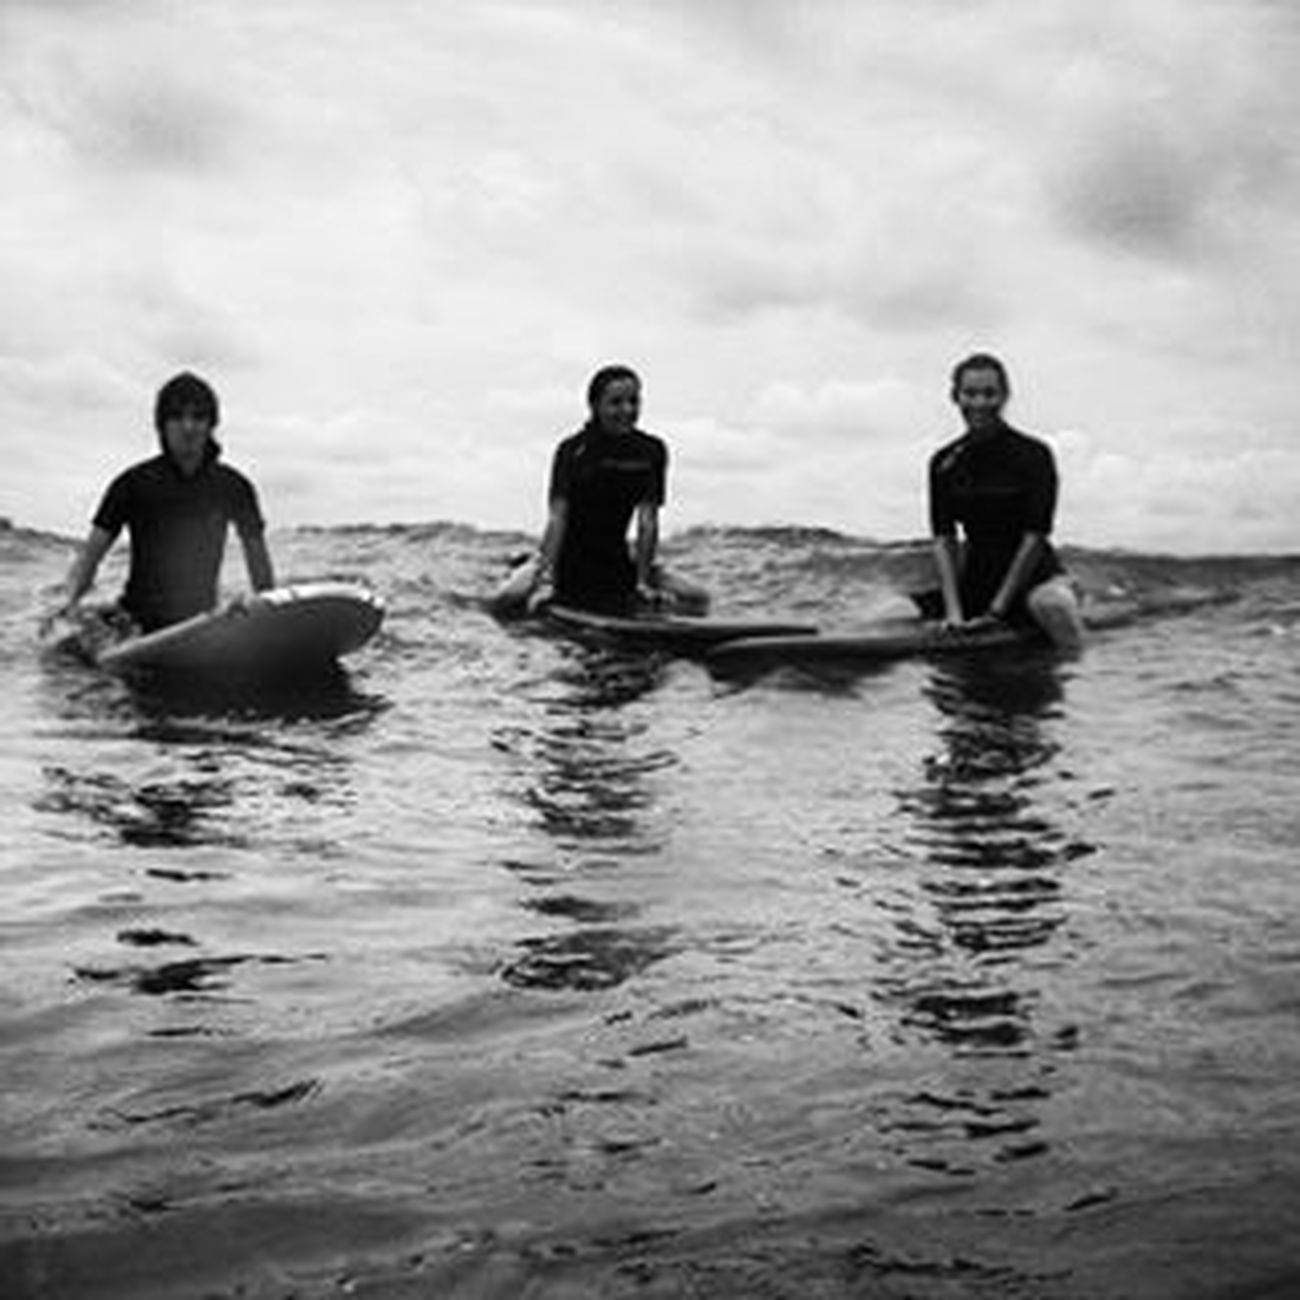 Photography Photo Blackandwhite Black White Beautiful Igersnavarra Anonymous_igers Anonymous_es Anonymous_igers_members Anonymous_nature Sea Surf Beach Surfer Surfing Descubriendoigers Instantes_fotograficos